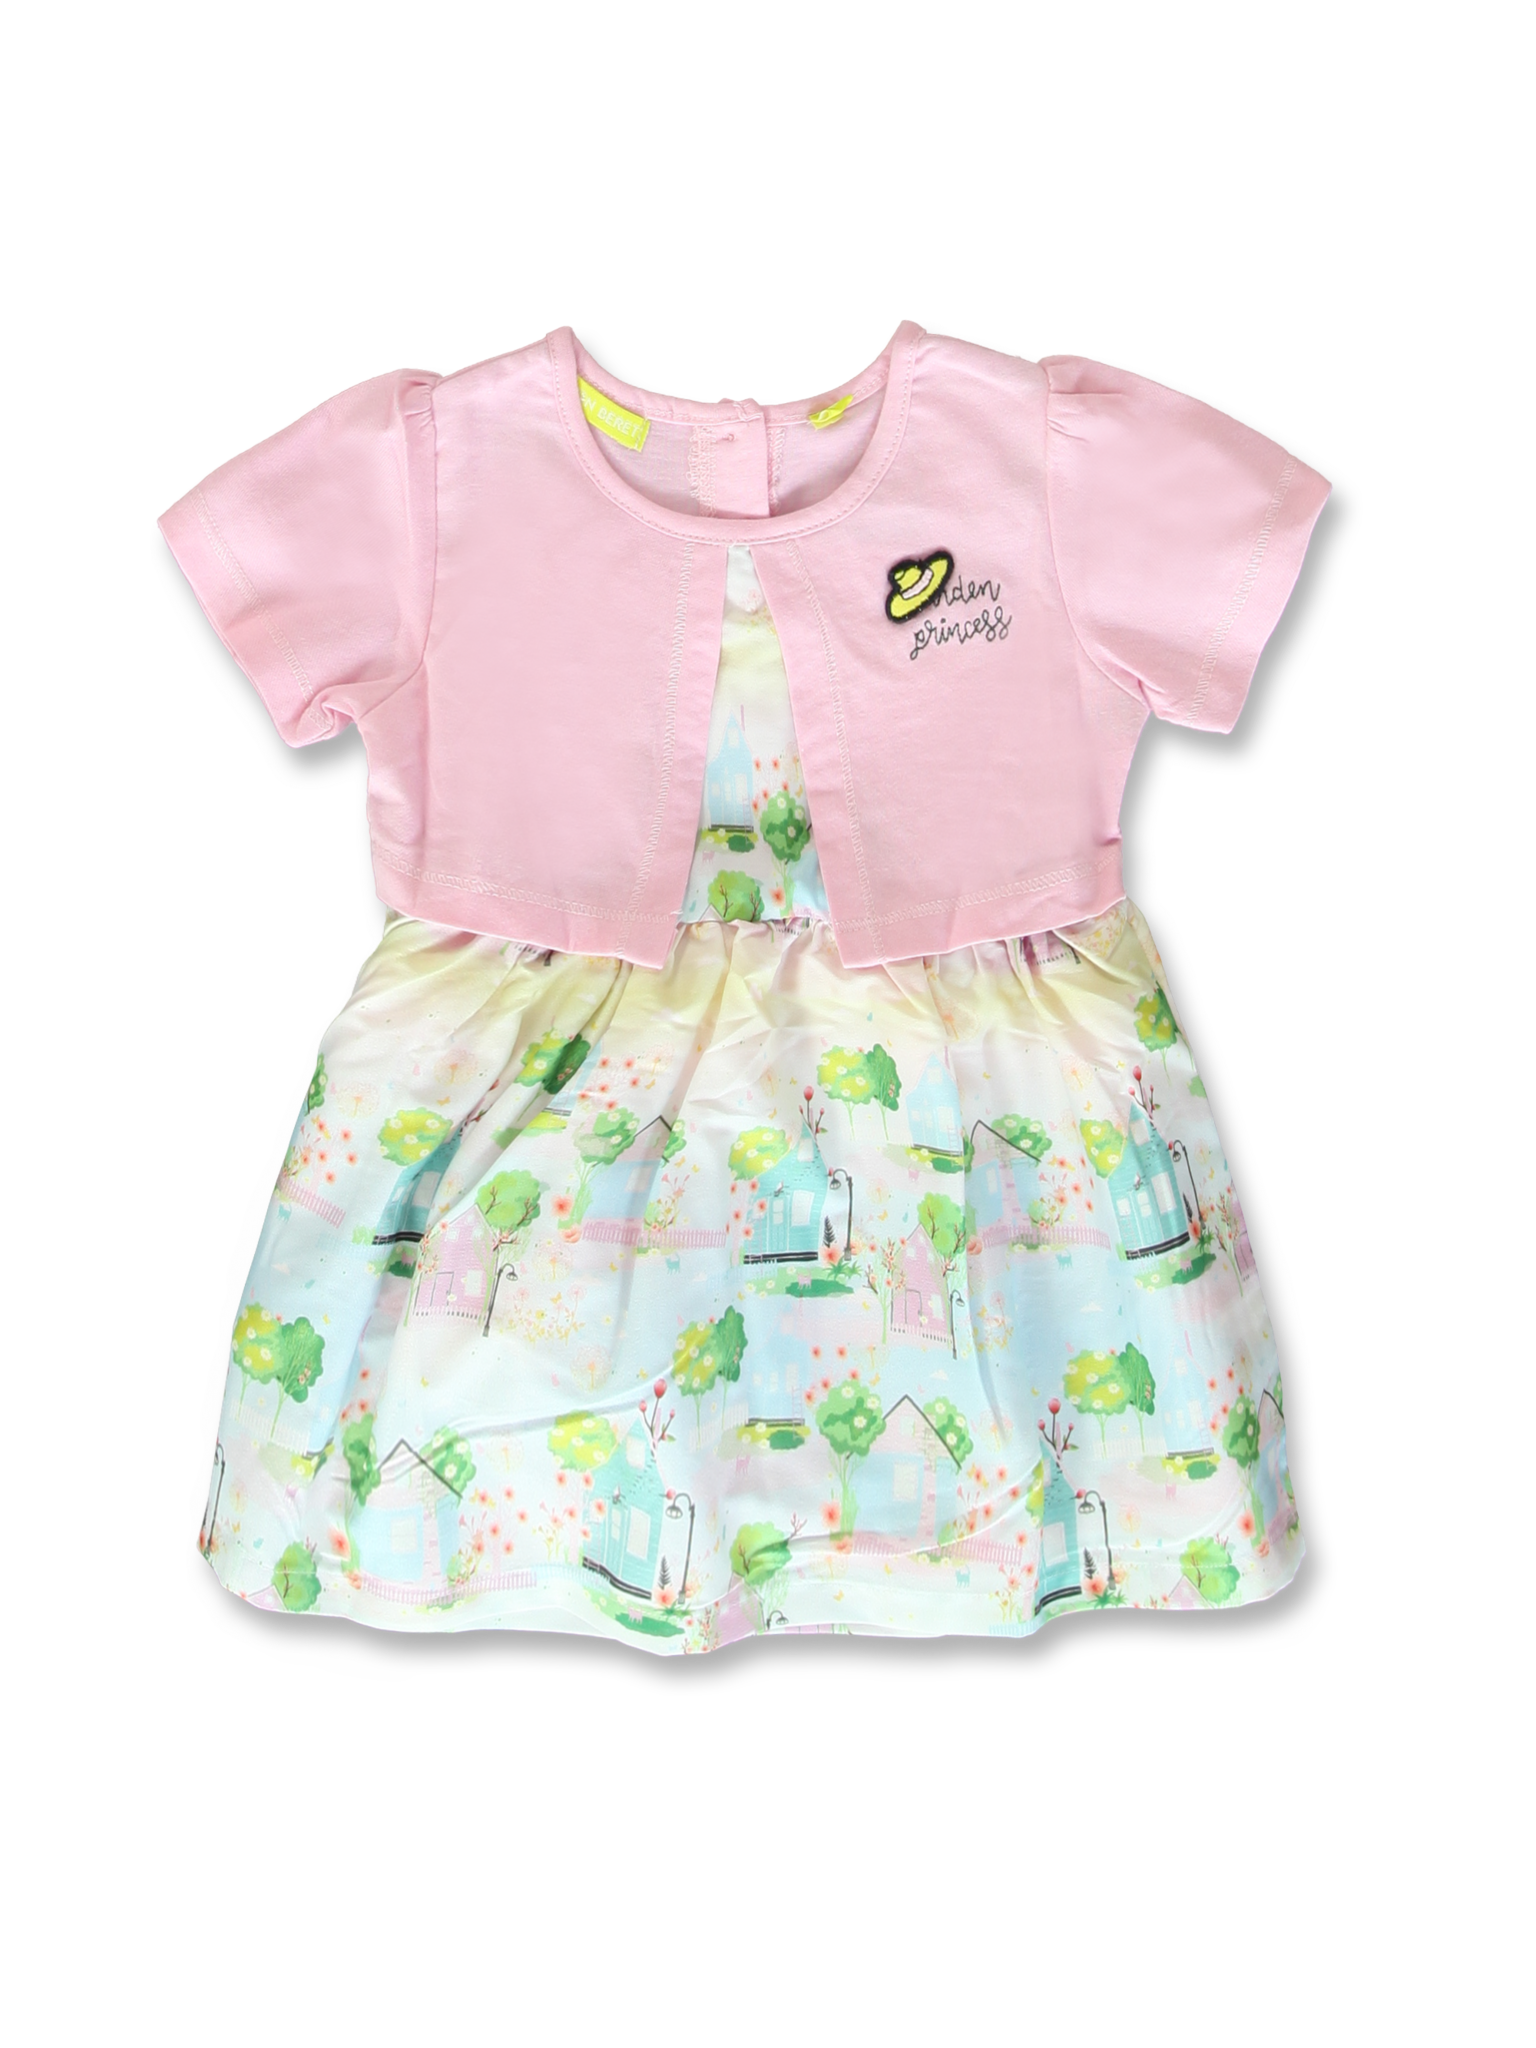 All Brands | Summerproducts Baby | Dress | 8 pcs/box